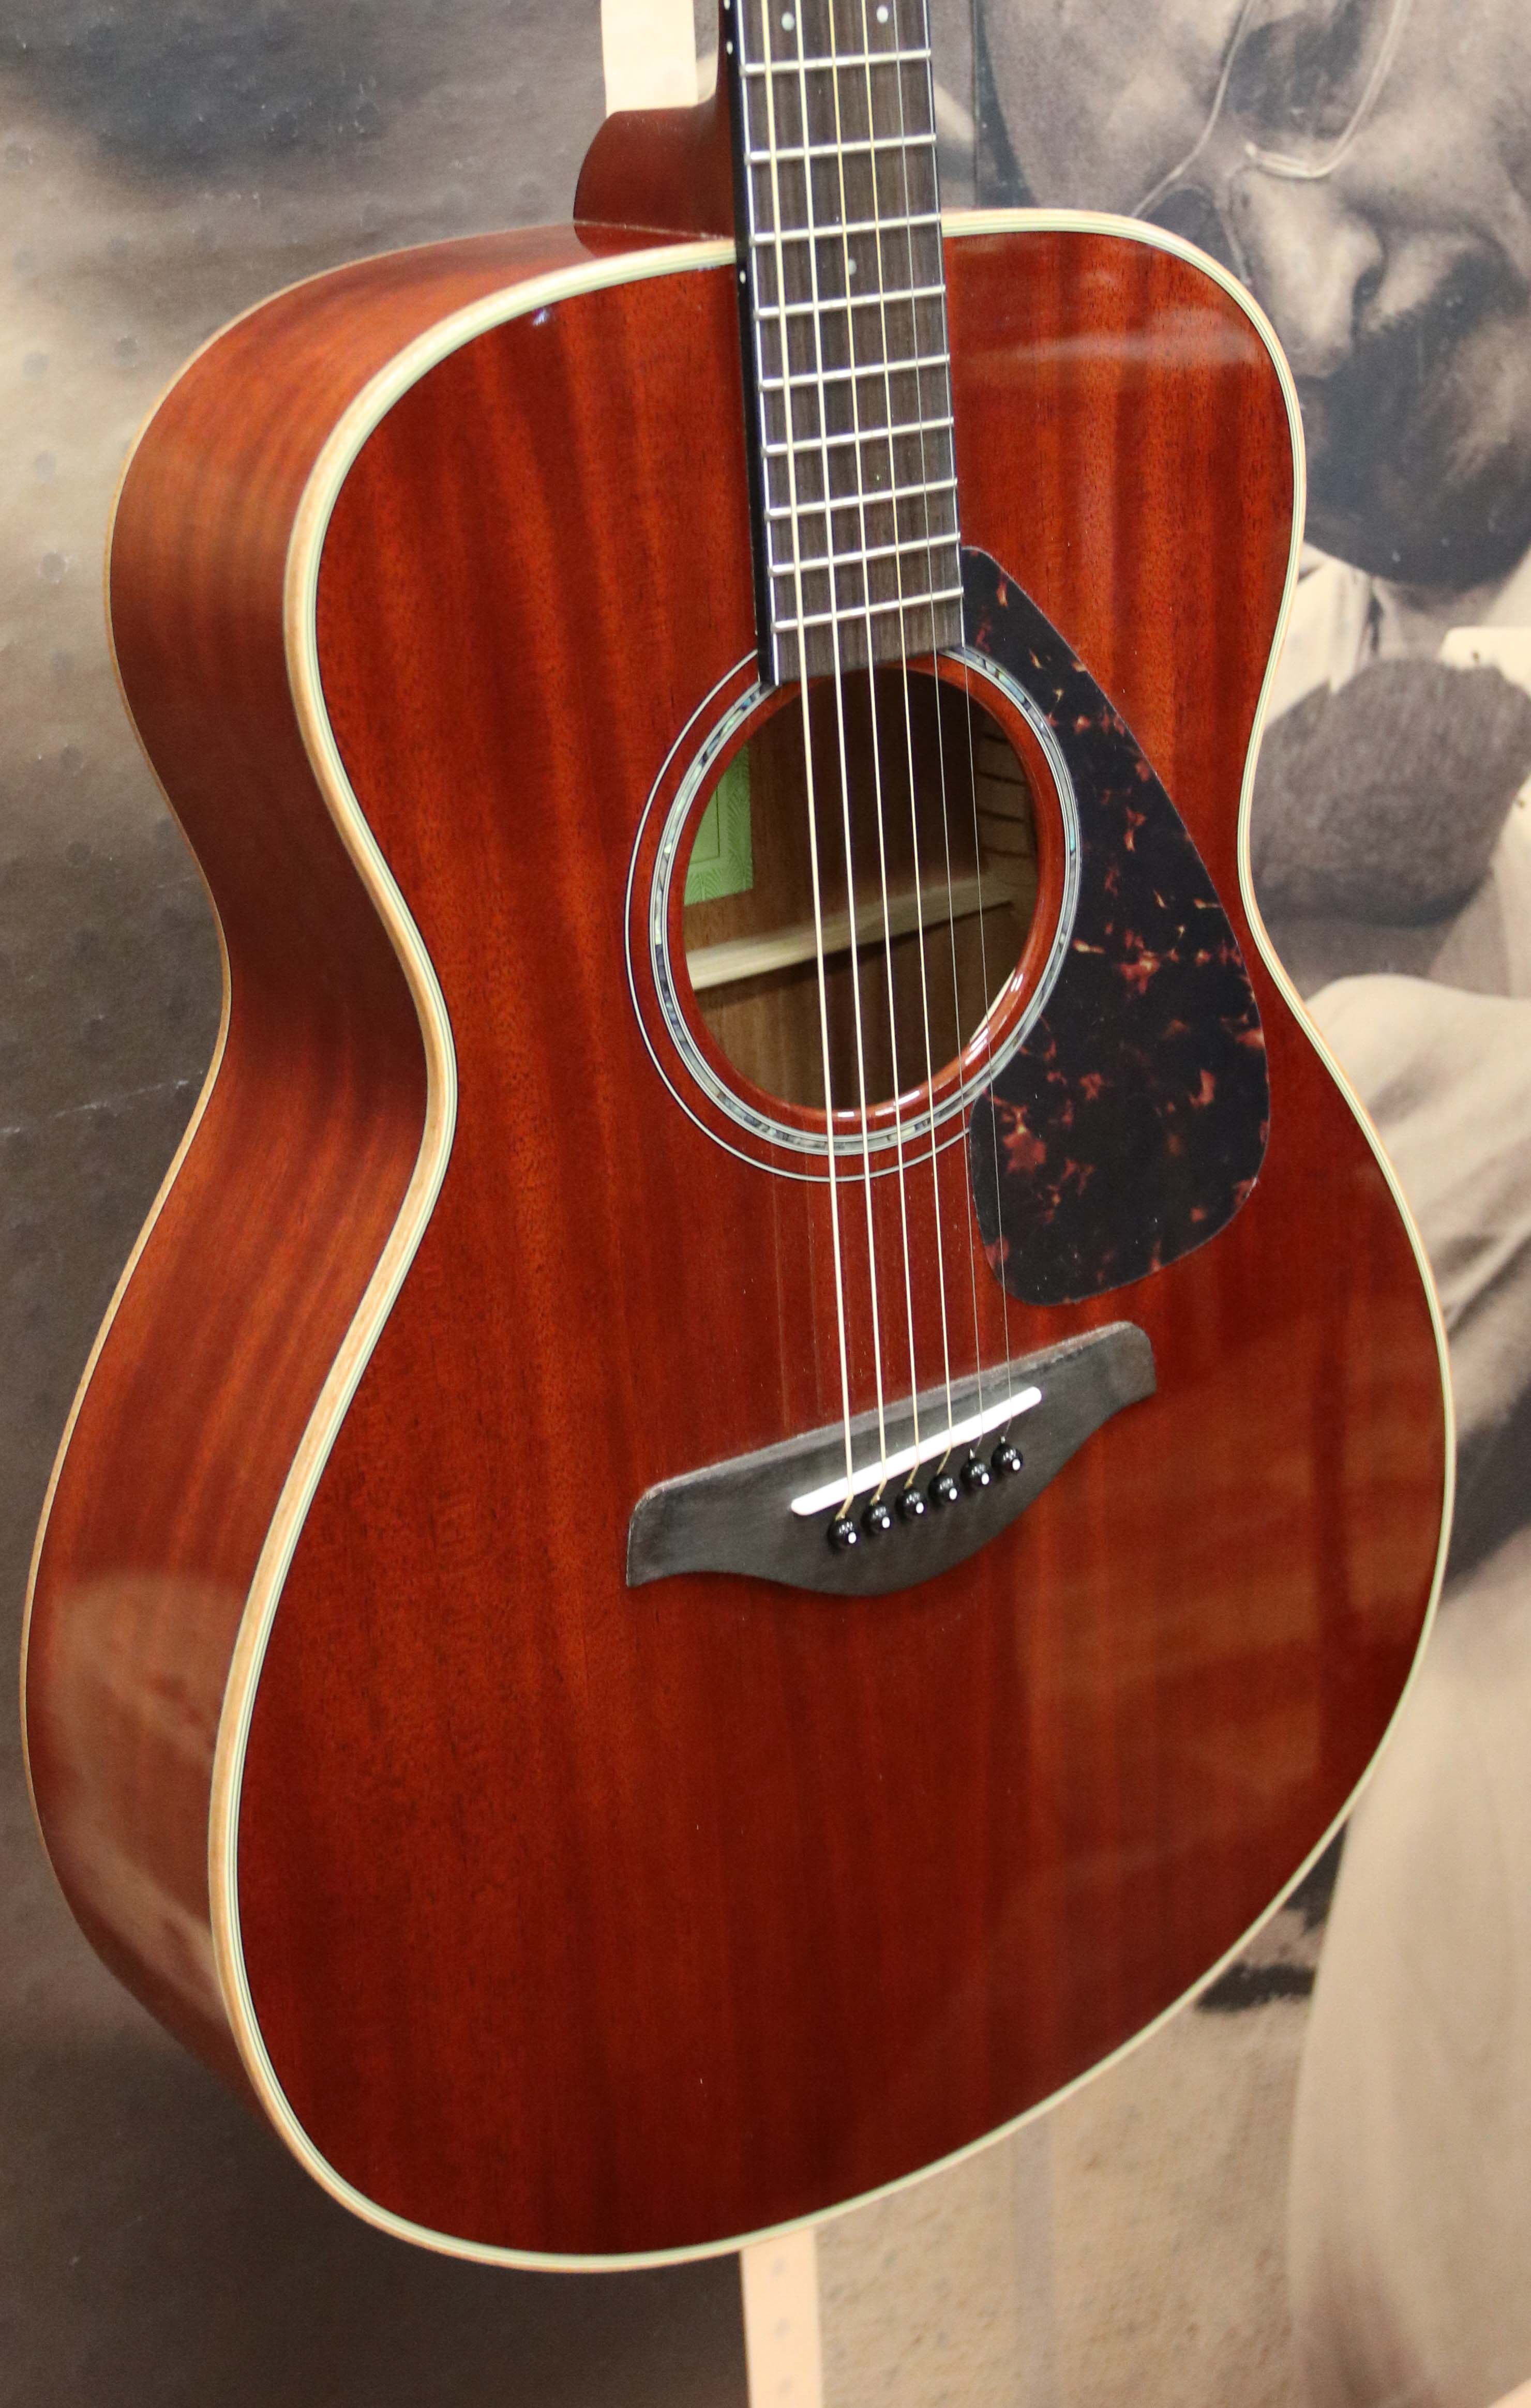 yamaha fs850 solid top small body acoustic guitar natural mahogany 889025104067 ebay. Black Bedroom Furniture Sets. Home Design Ideas